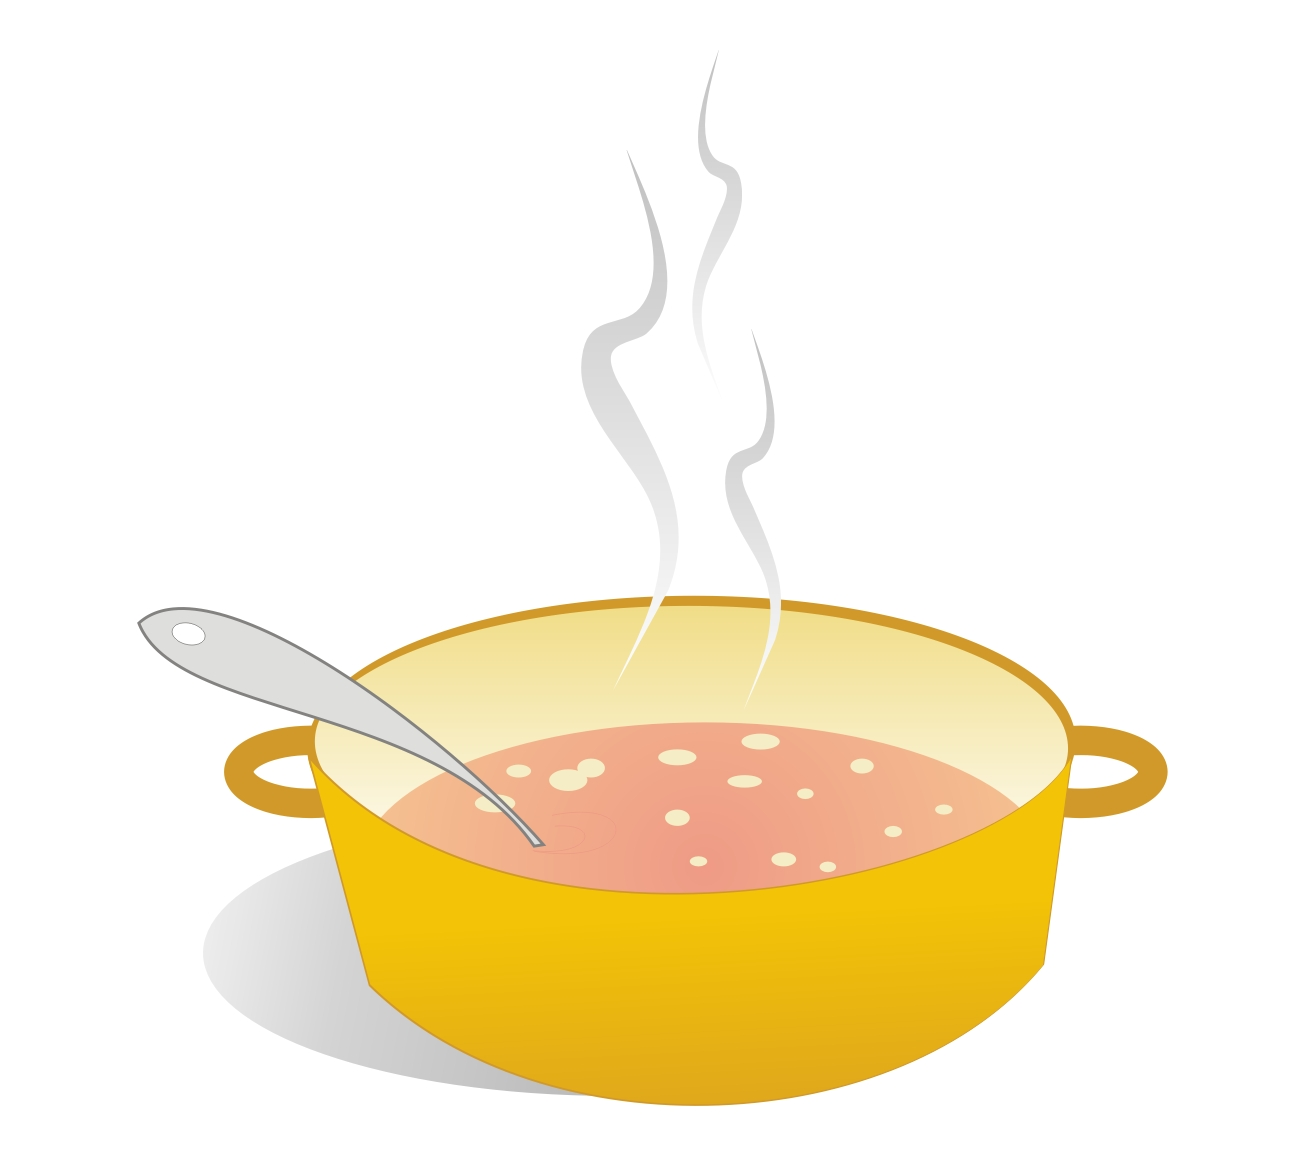 Free Bowl Of Soup Picture, Download Free Clip Art, Free Clip.